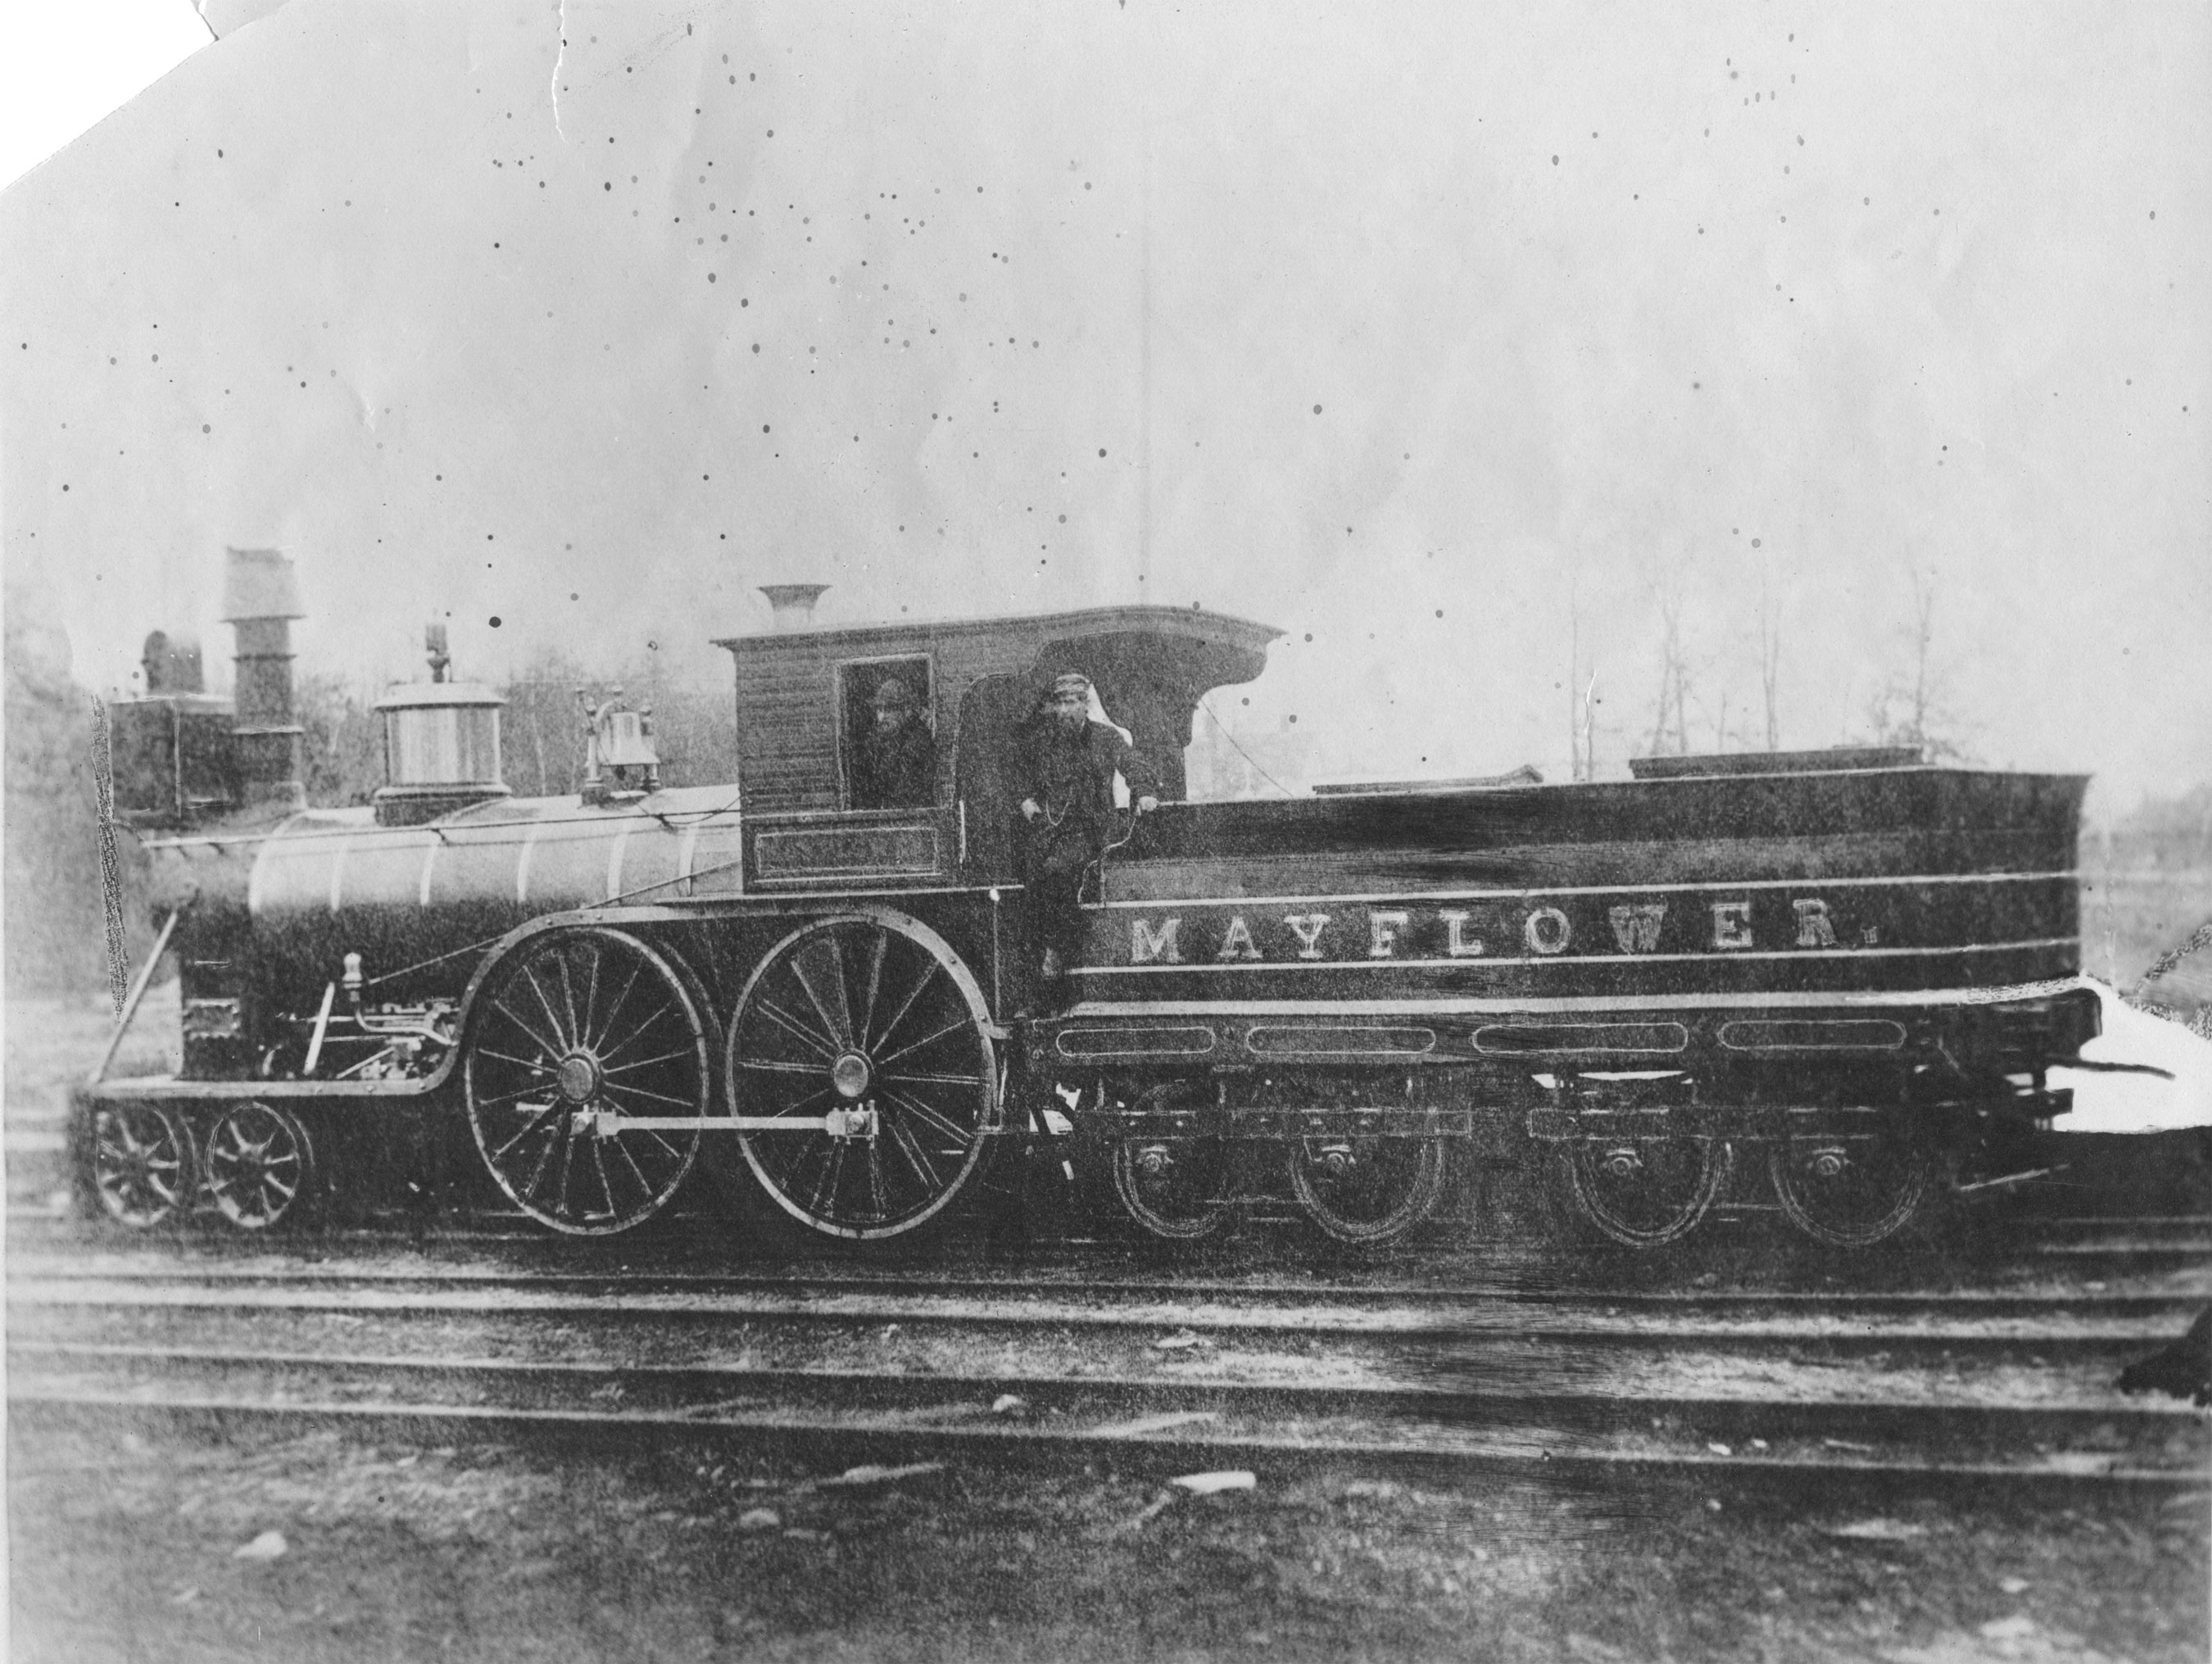 The Engine <i>Mayflower</i>, no date